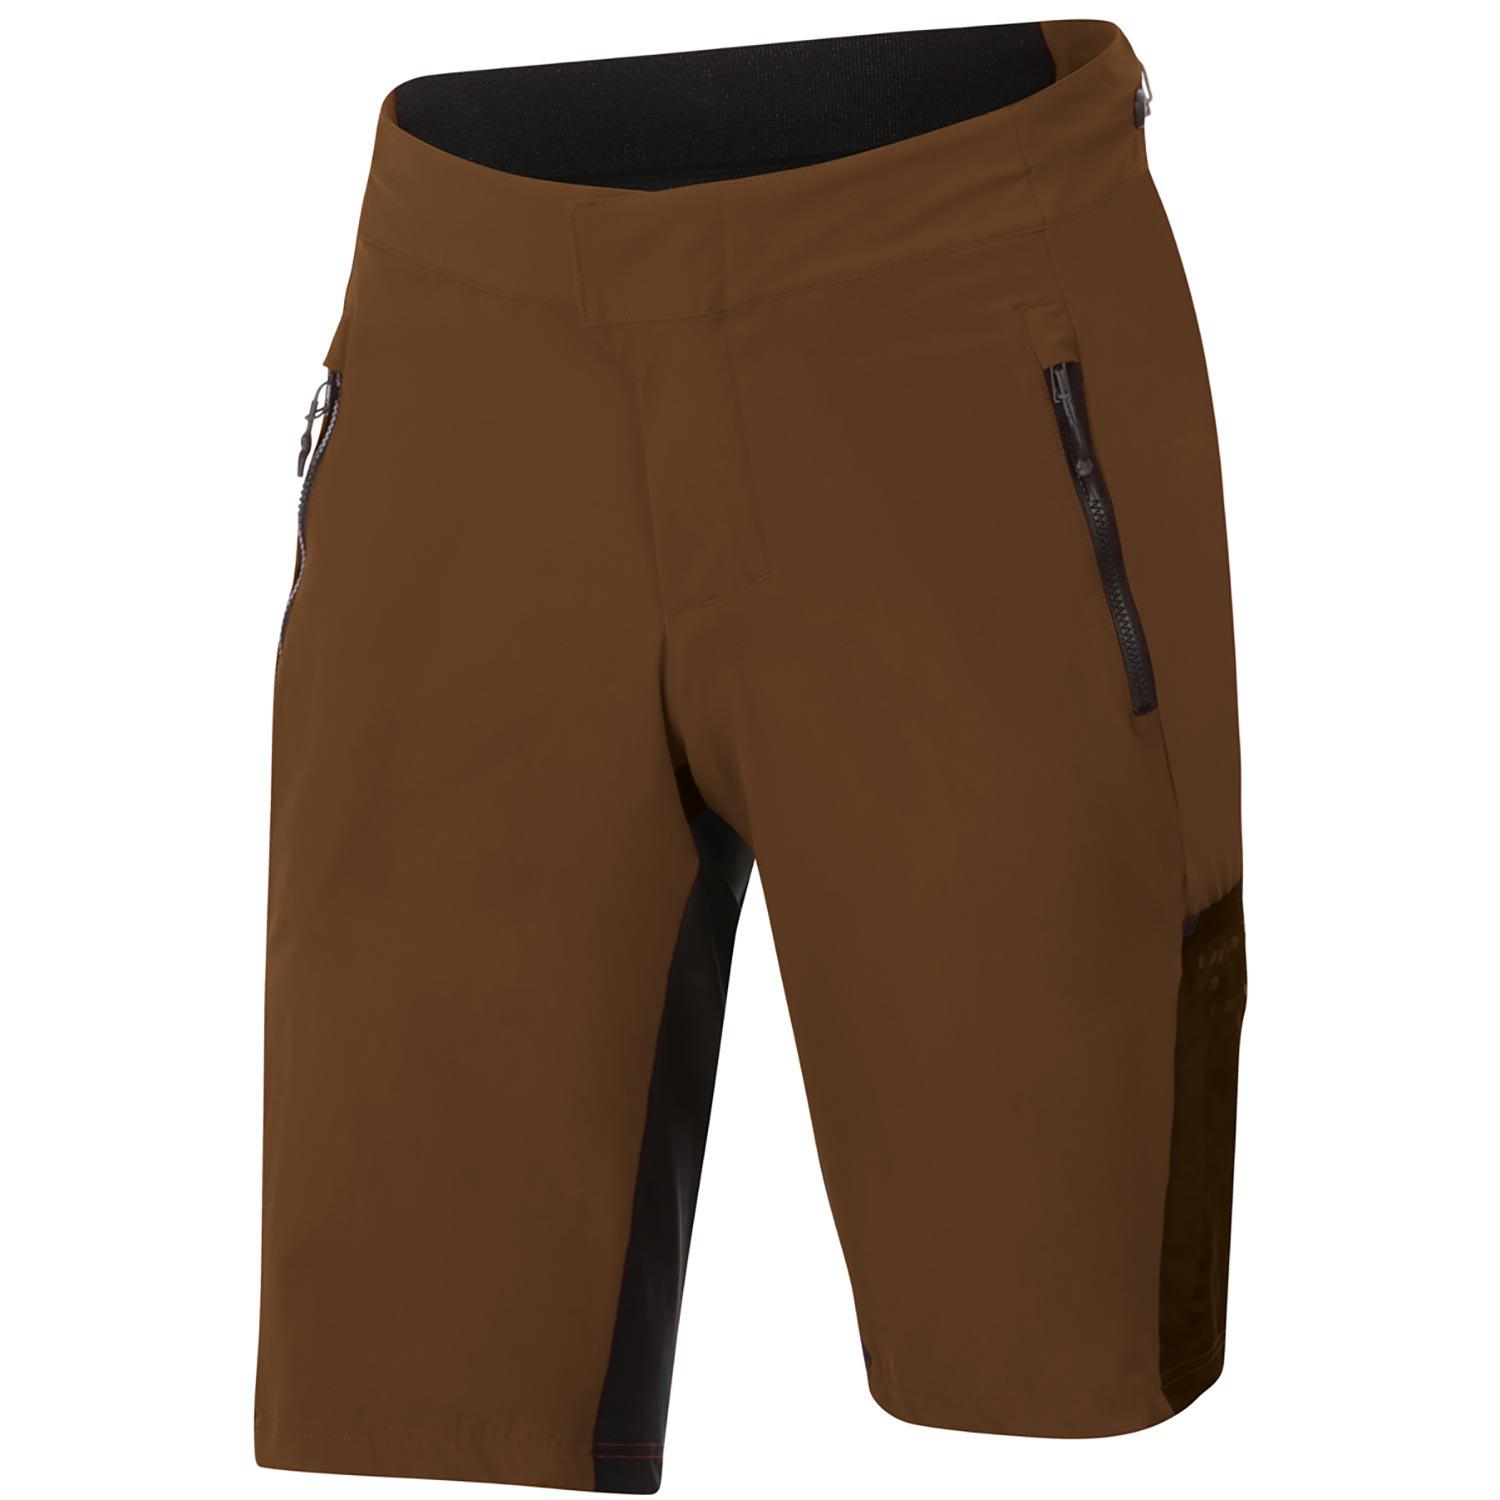 Sportful-Sportful Supergiara Overshorts-Chocolate-S-SF205072422-saddleback-elite-performance-cycling